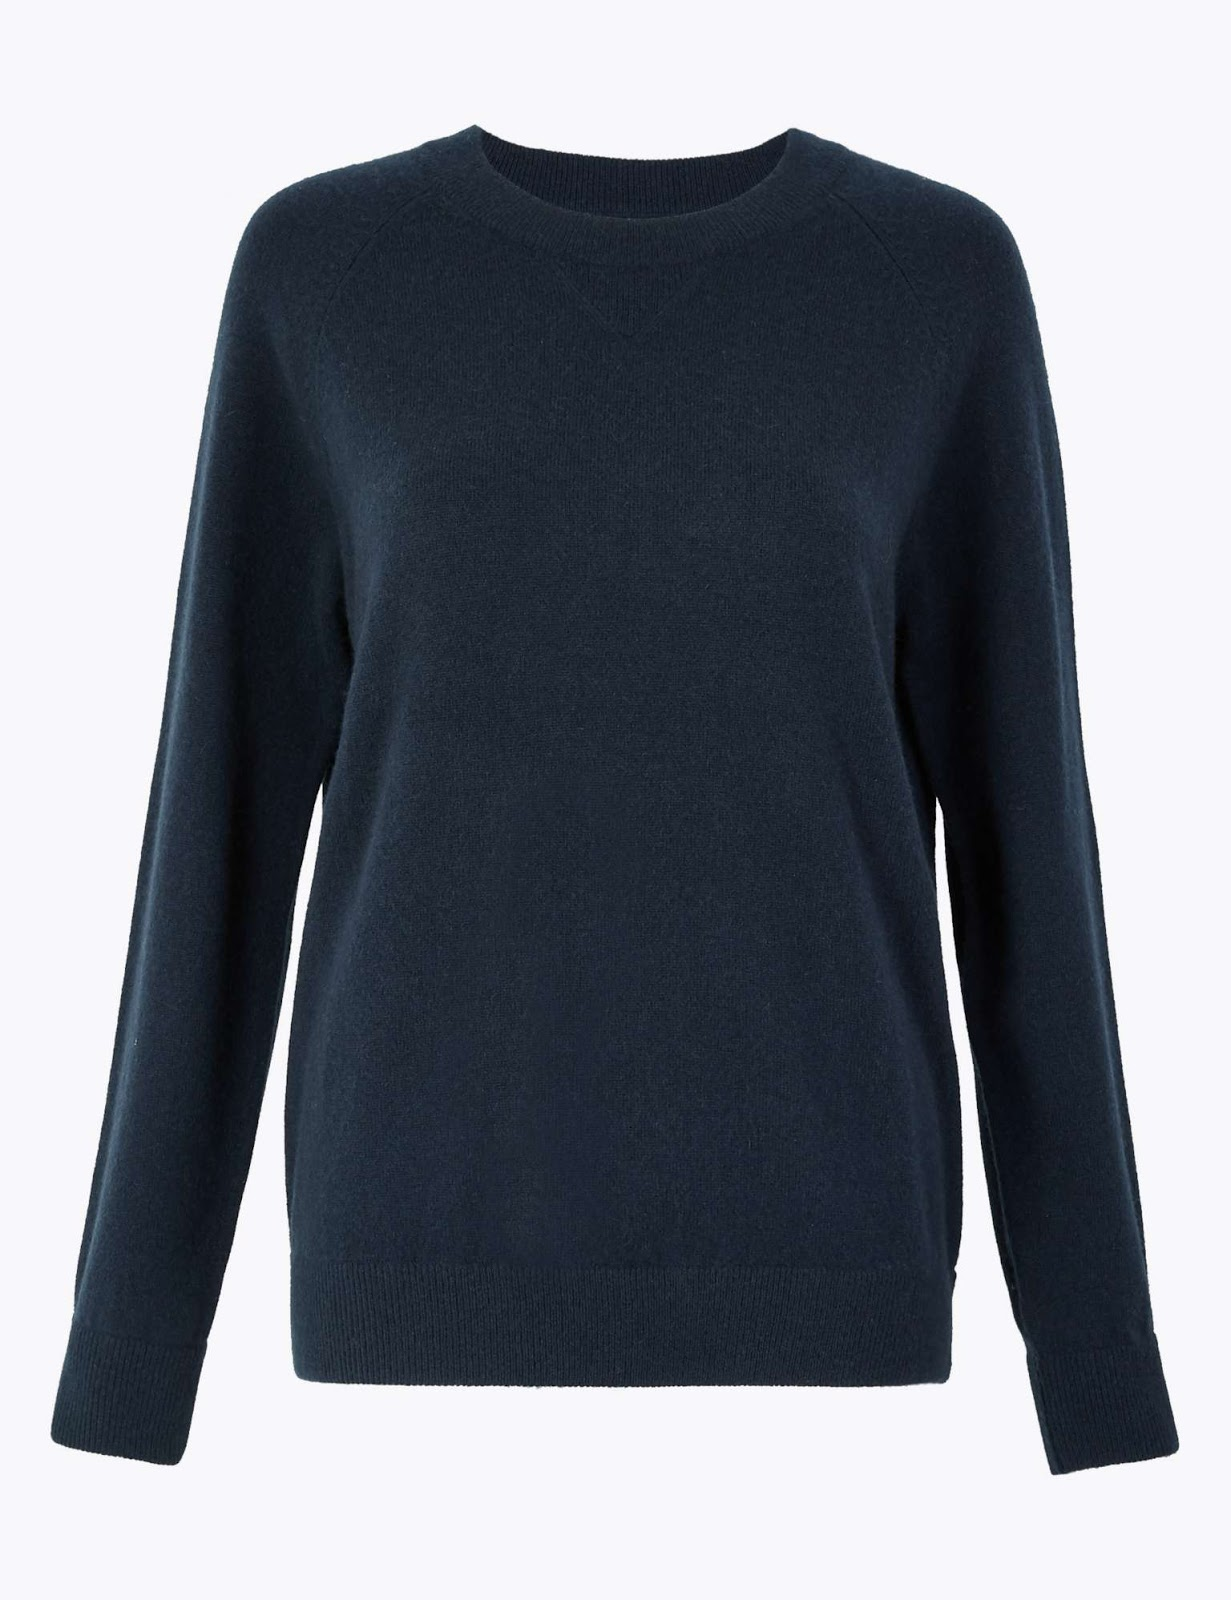 Marks and Spencer pure cashmere relaxed sweatshirt